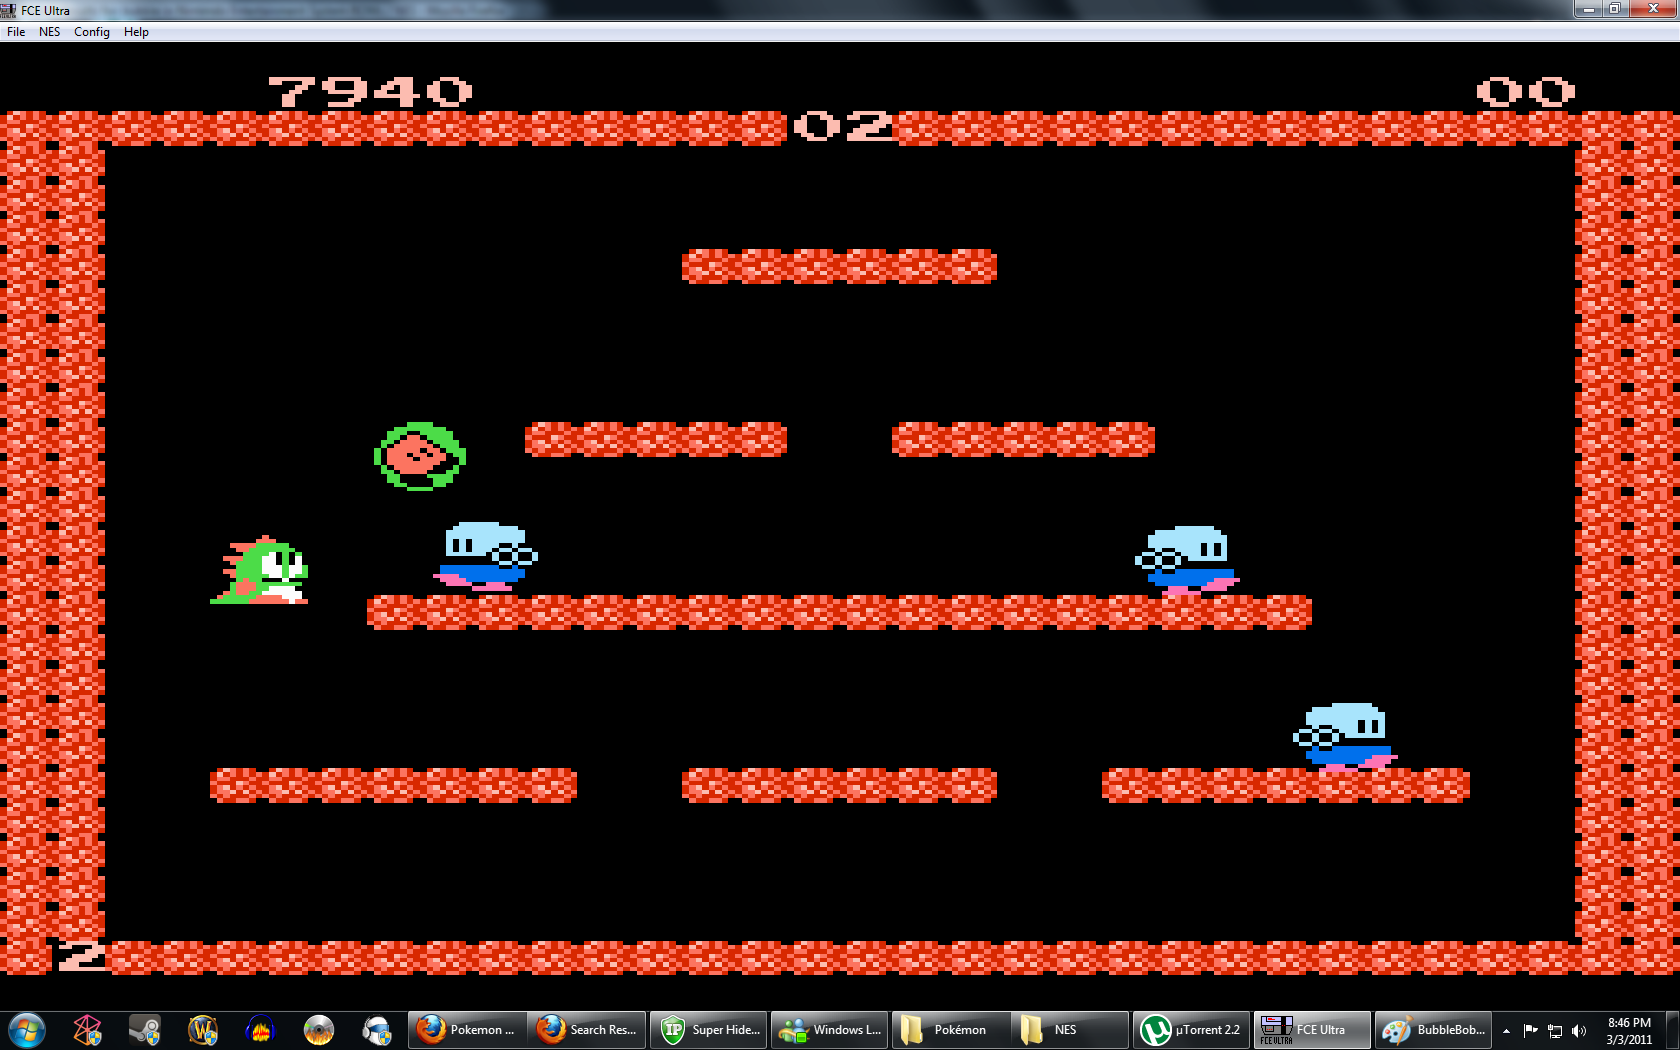 Play bubble bobble game free download jeva games online play.